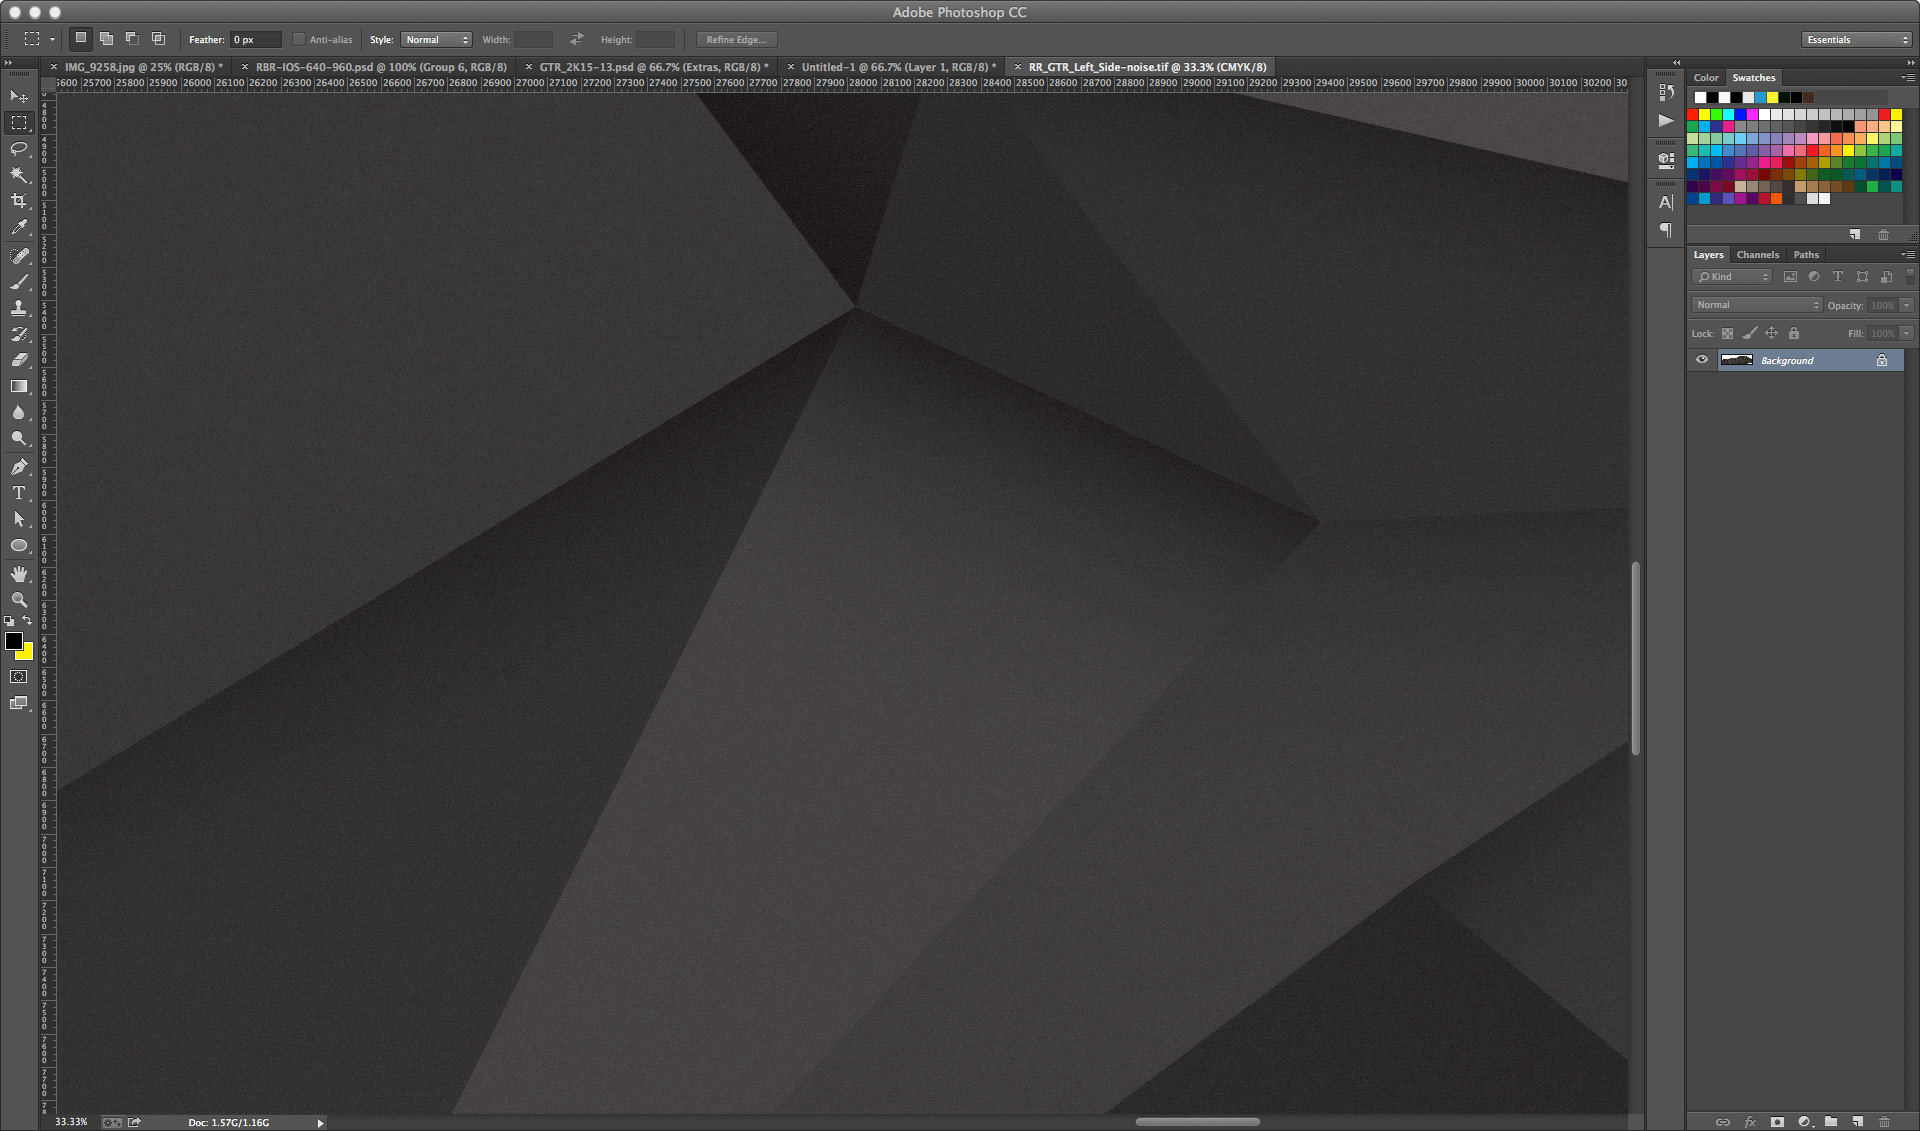 Fixed in photoshop with additional noise layer (noise helps defuses banding as well as add the matte effect)